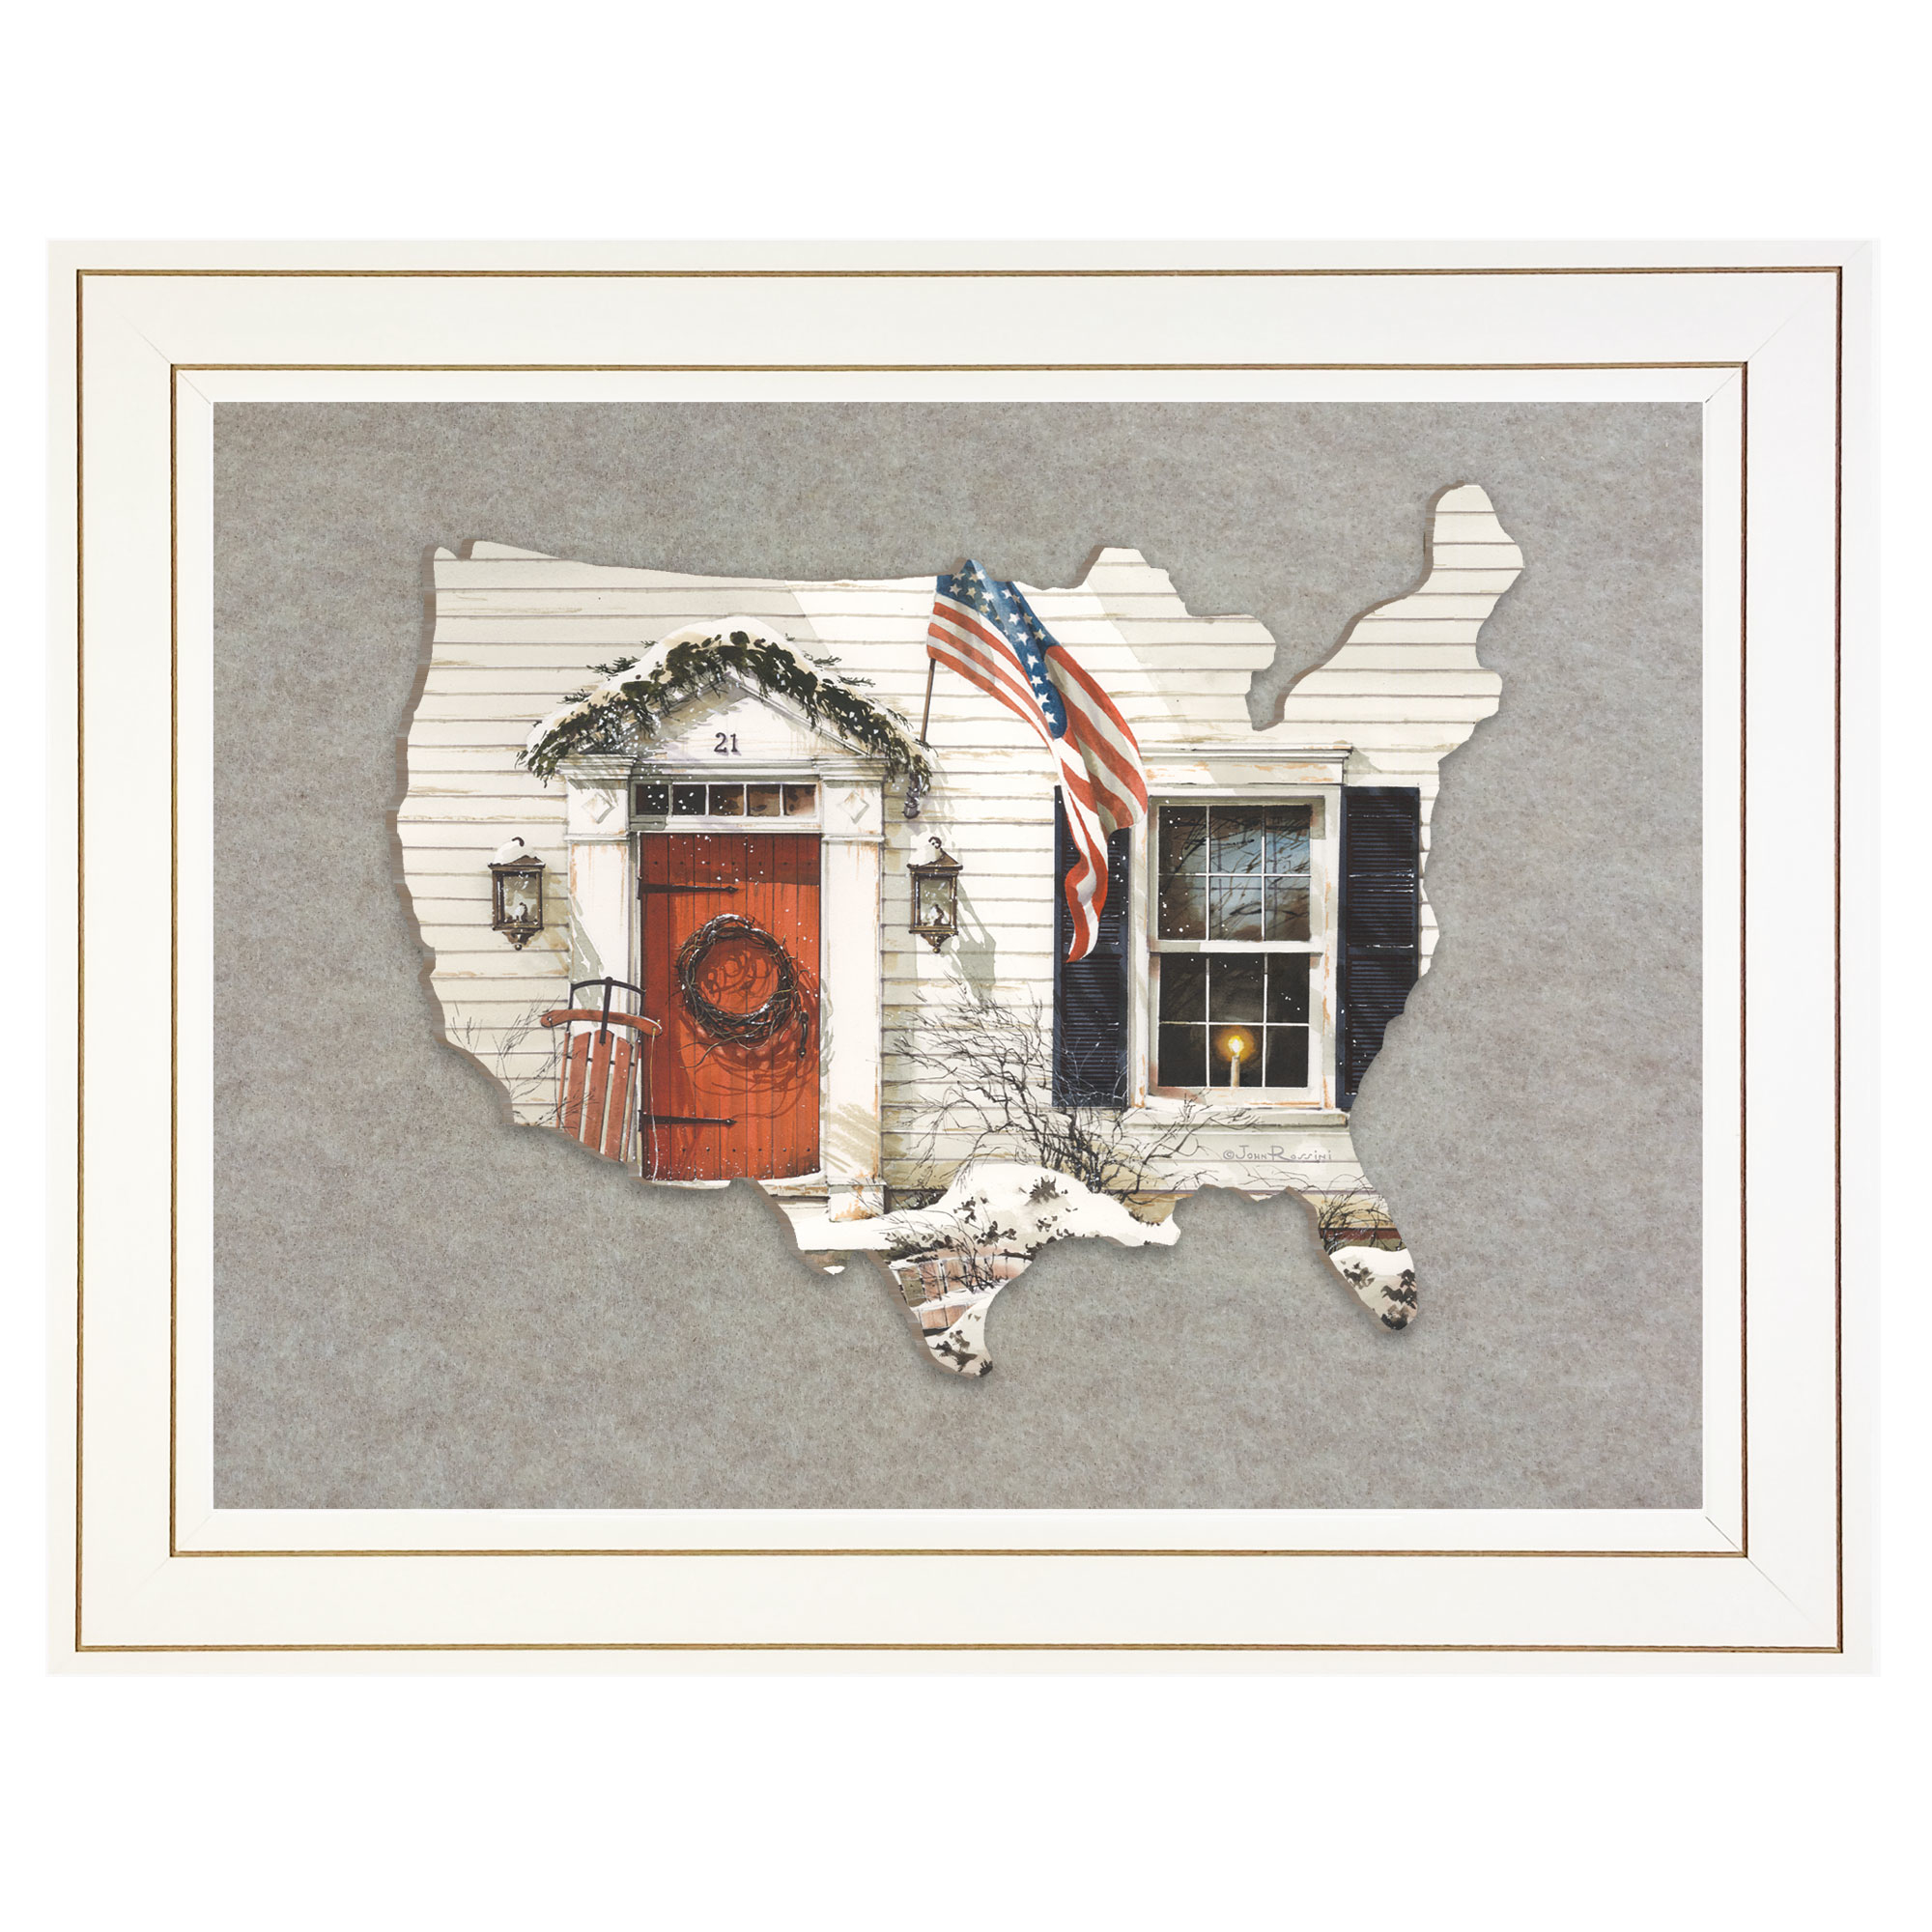 Jr177Usa-E-226G 21 Main Street, by artisan John Rossini, 3D framed art printed directly on wood in the shape of the United States, then mounted on a felt background, in an attractive 19 x 15 white frame. Arrives ready to hang. Made in the USA by skilled American workers. * Textured Artwork with a 'rolled on' acid-free acrylic coating to create a canvas painting effect. * UV Protectant Coating protects artwork from fading. No glass is necessary. * Moulding adds natural beauty to the framed art. Frame is keyholed for the easy hanging. * This Fine Home Decor piece made in the USA by Woman Owned Business (Wbe) is a perfect gift for a friend or relative. *